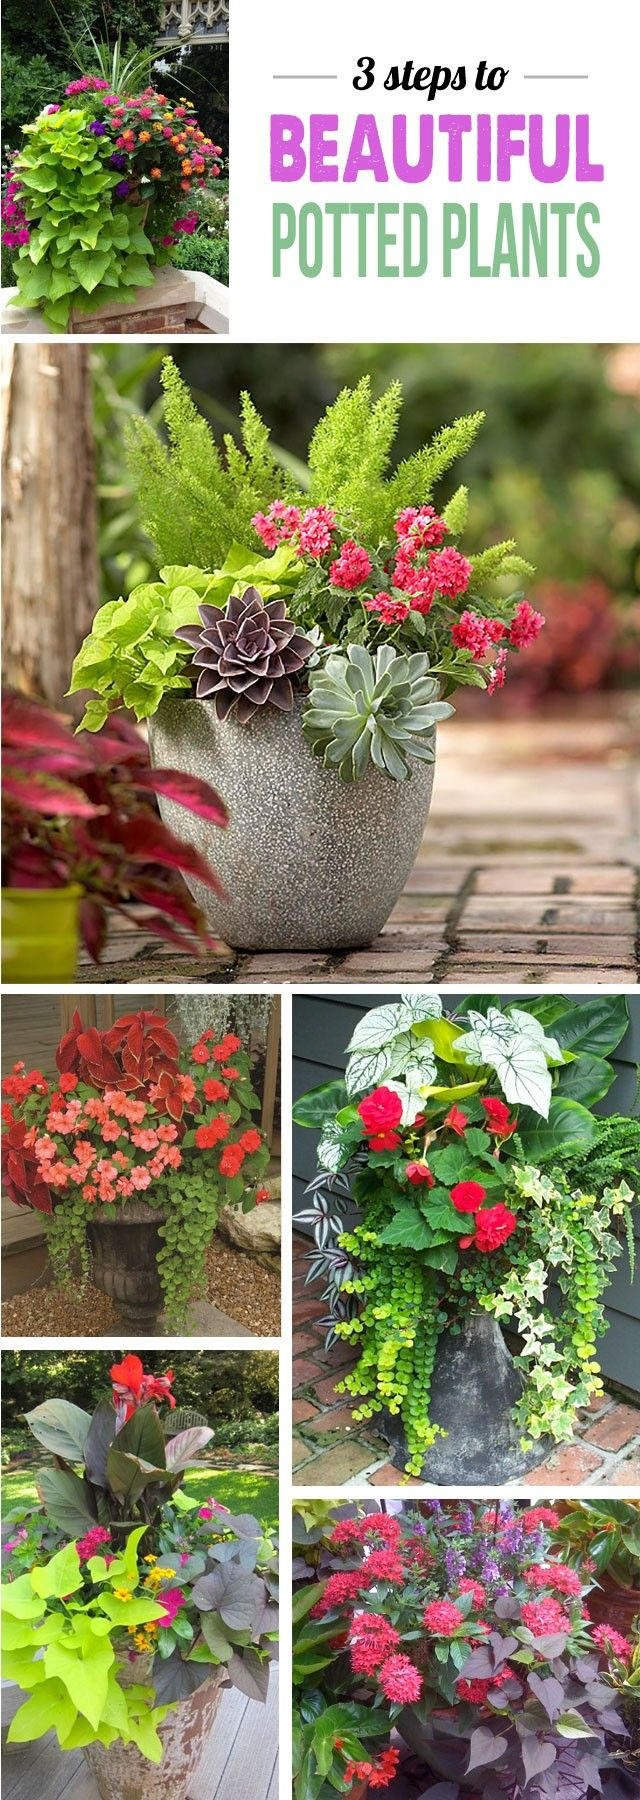 best 25+ potted plants patio ideas on pinterest | potted plants ... - Patio Flower Ideas